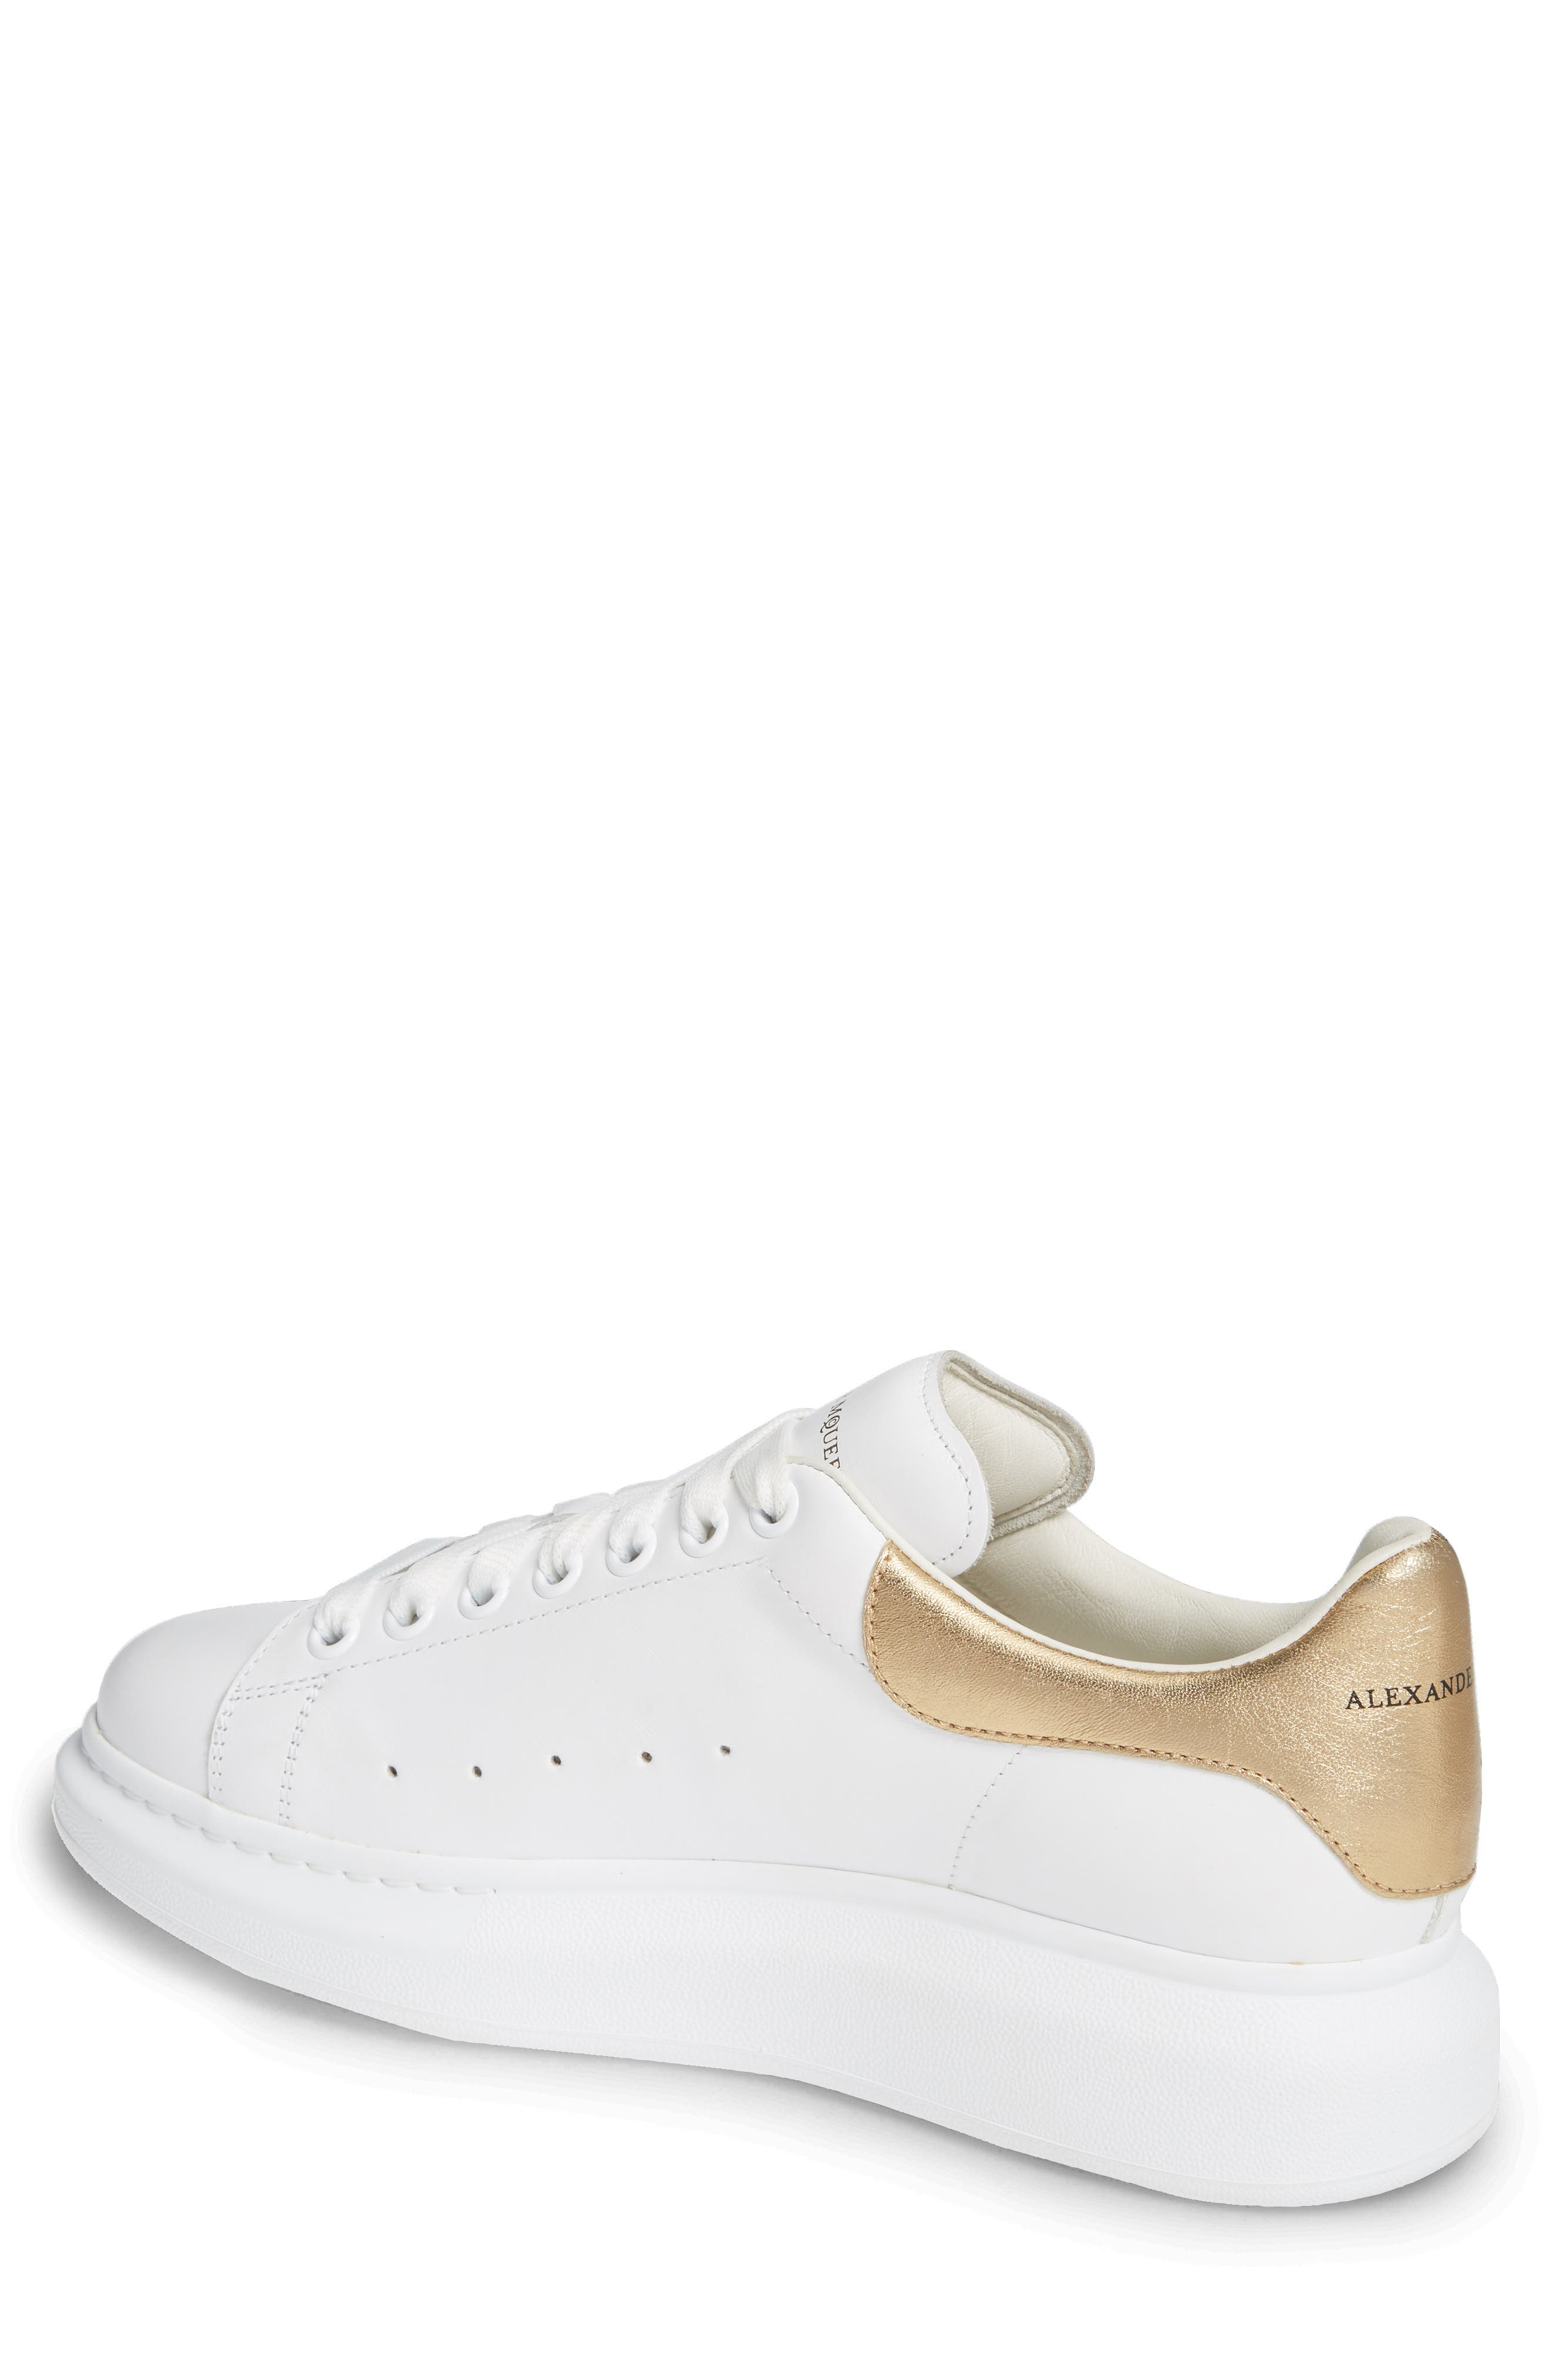 ALEXANDER MCQUEEN, Oversized Sneaker, Alternate thumbnail 2, color, WHITE/ GOLD